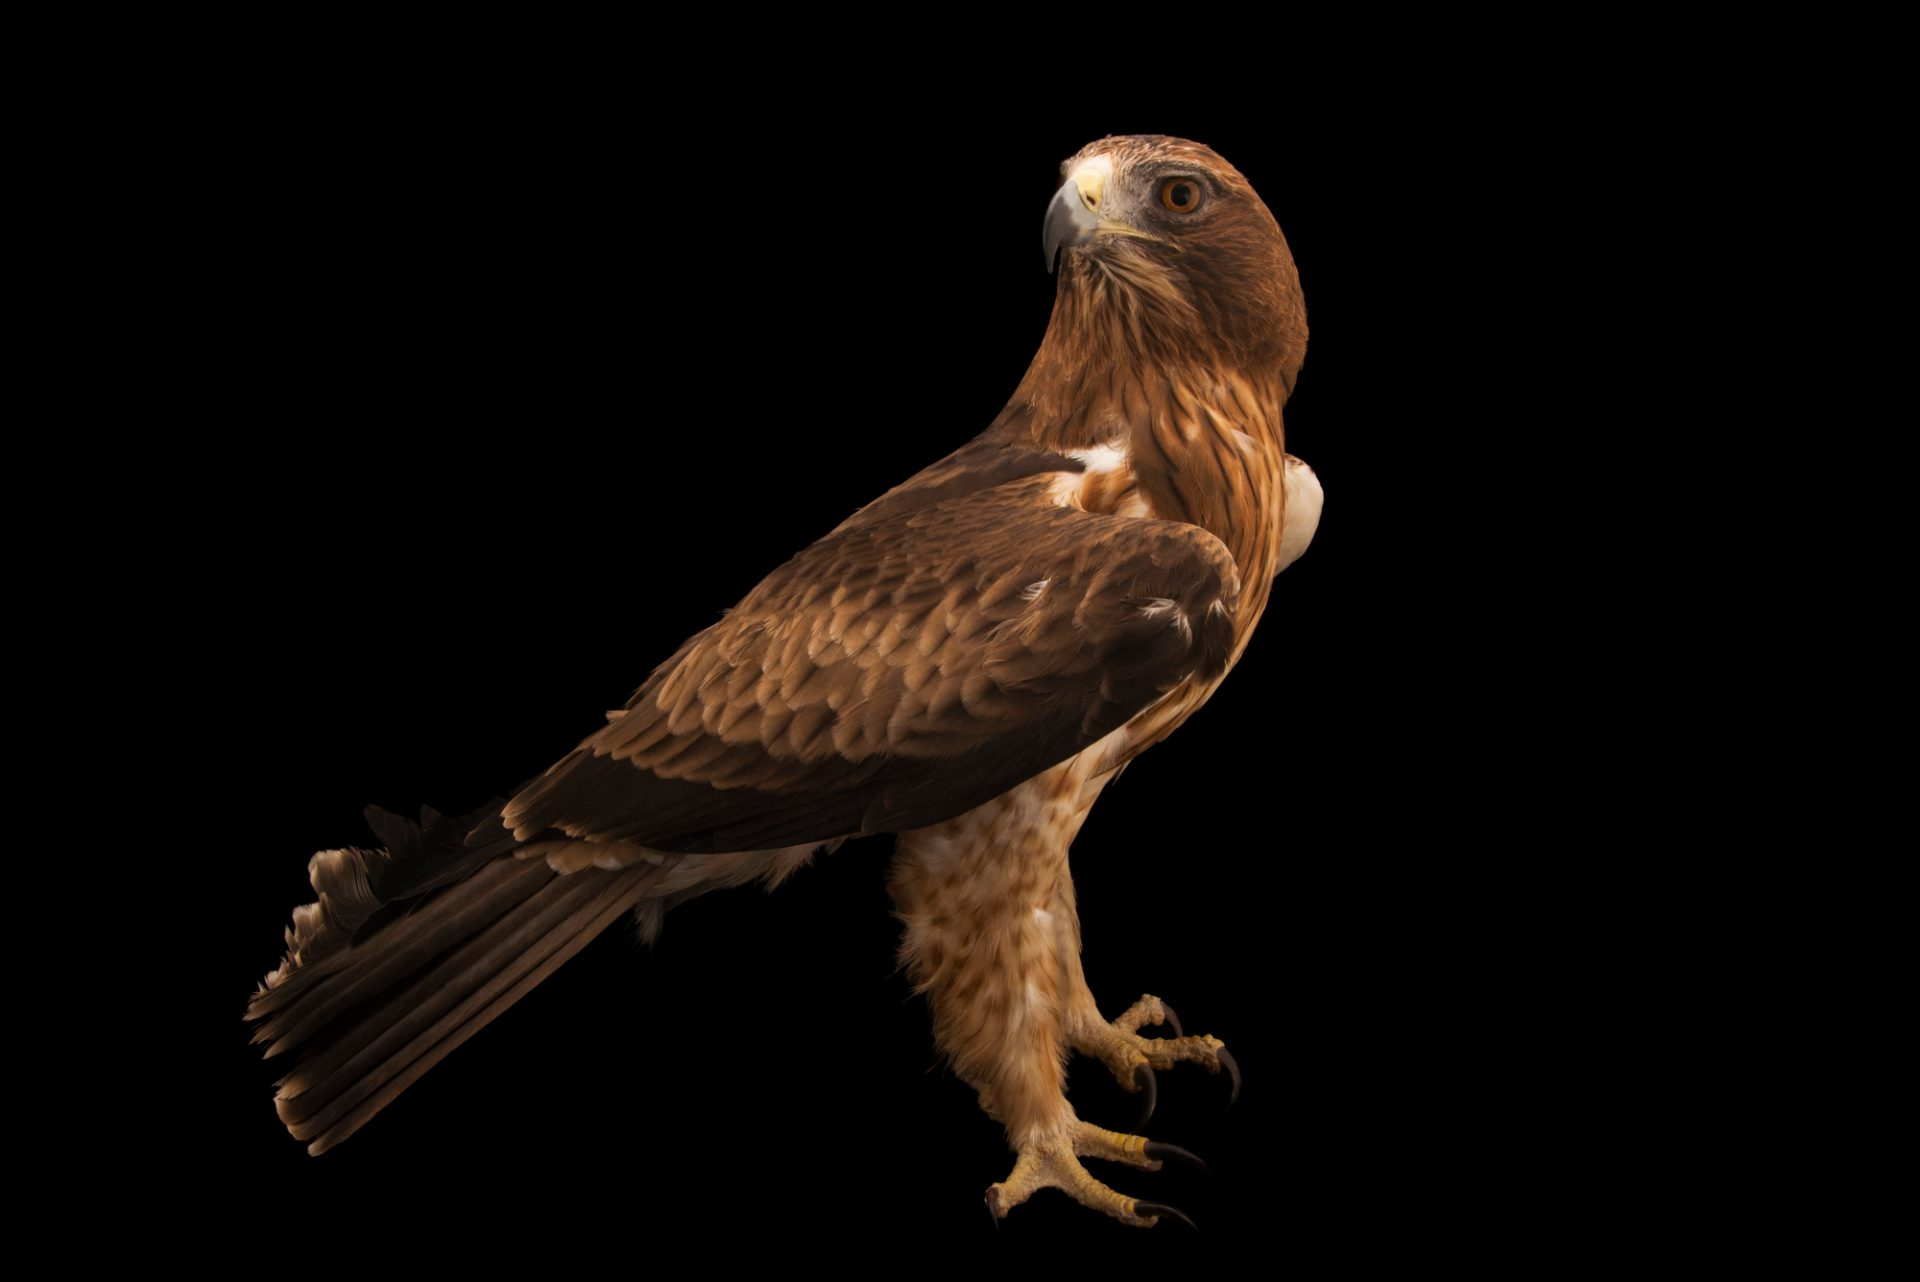 Photo: A booted eagle (Hieraaetus pennatus) at Sia, the Comanche Nation Ethno-Ornithological Initiative.